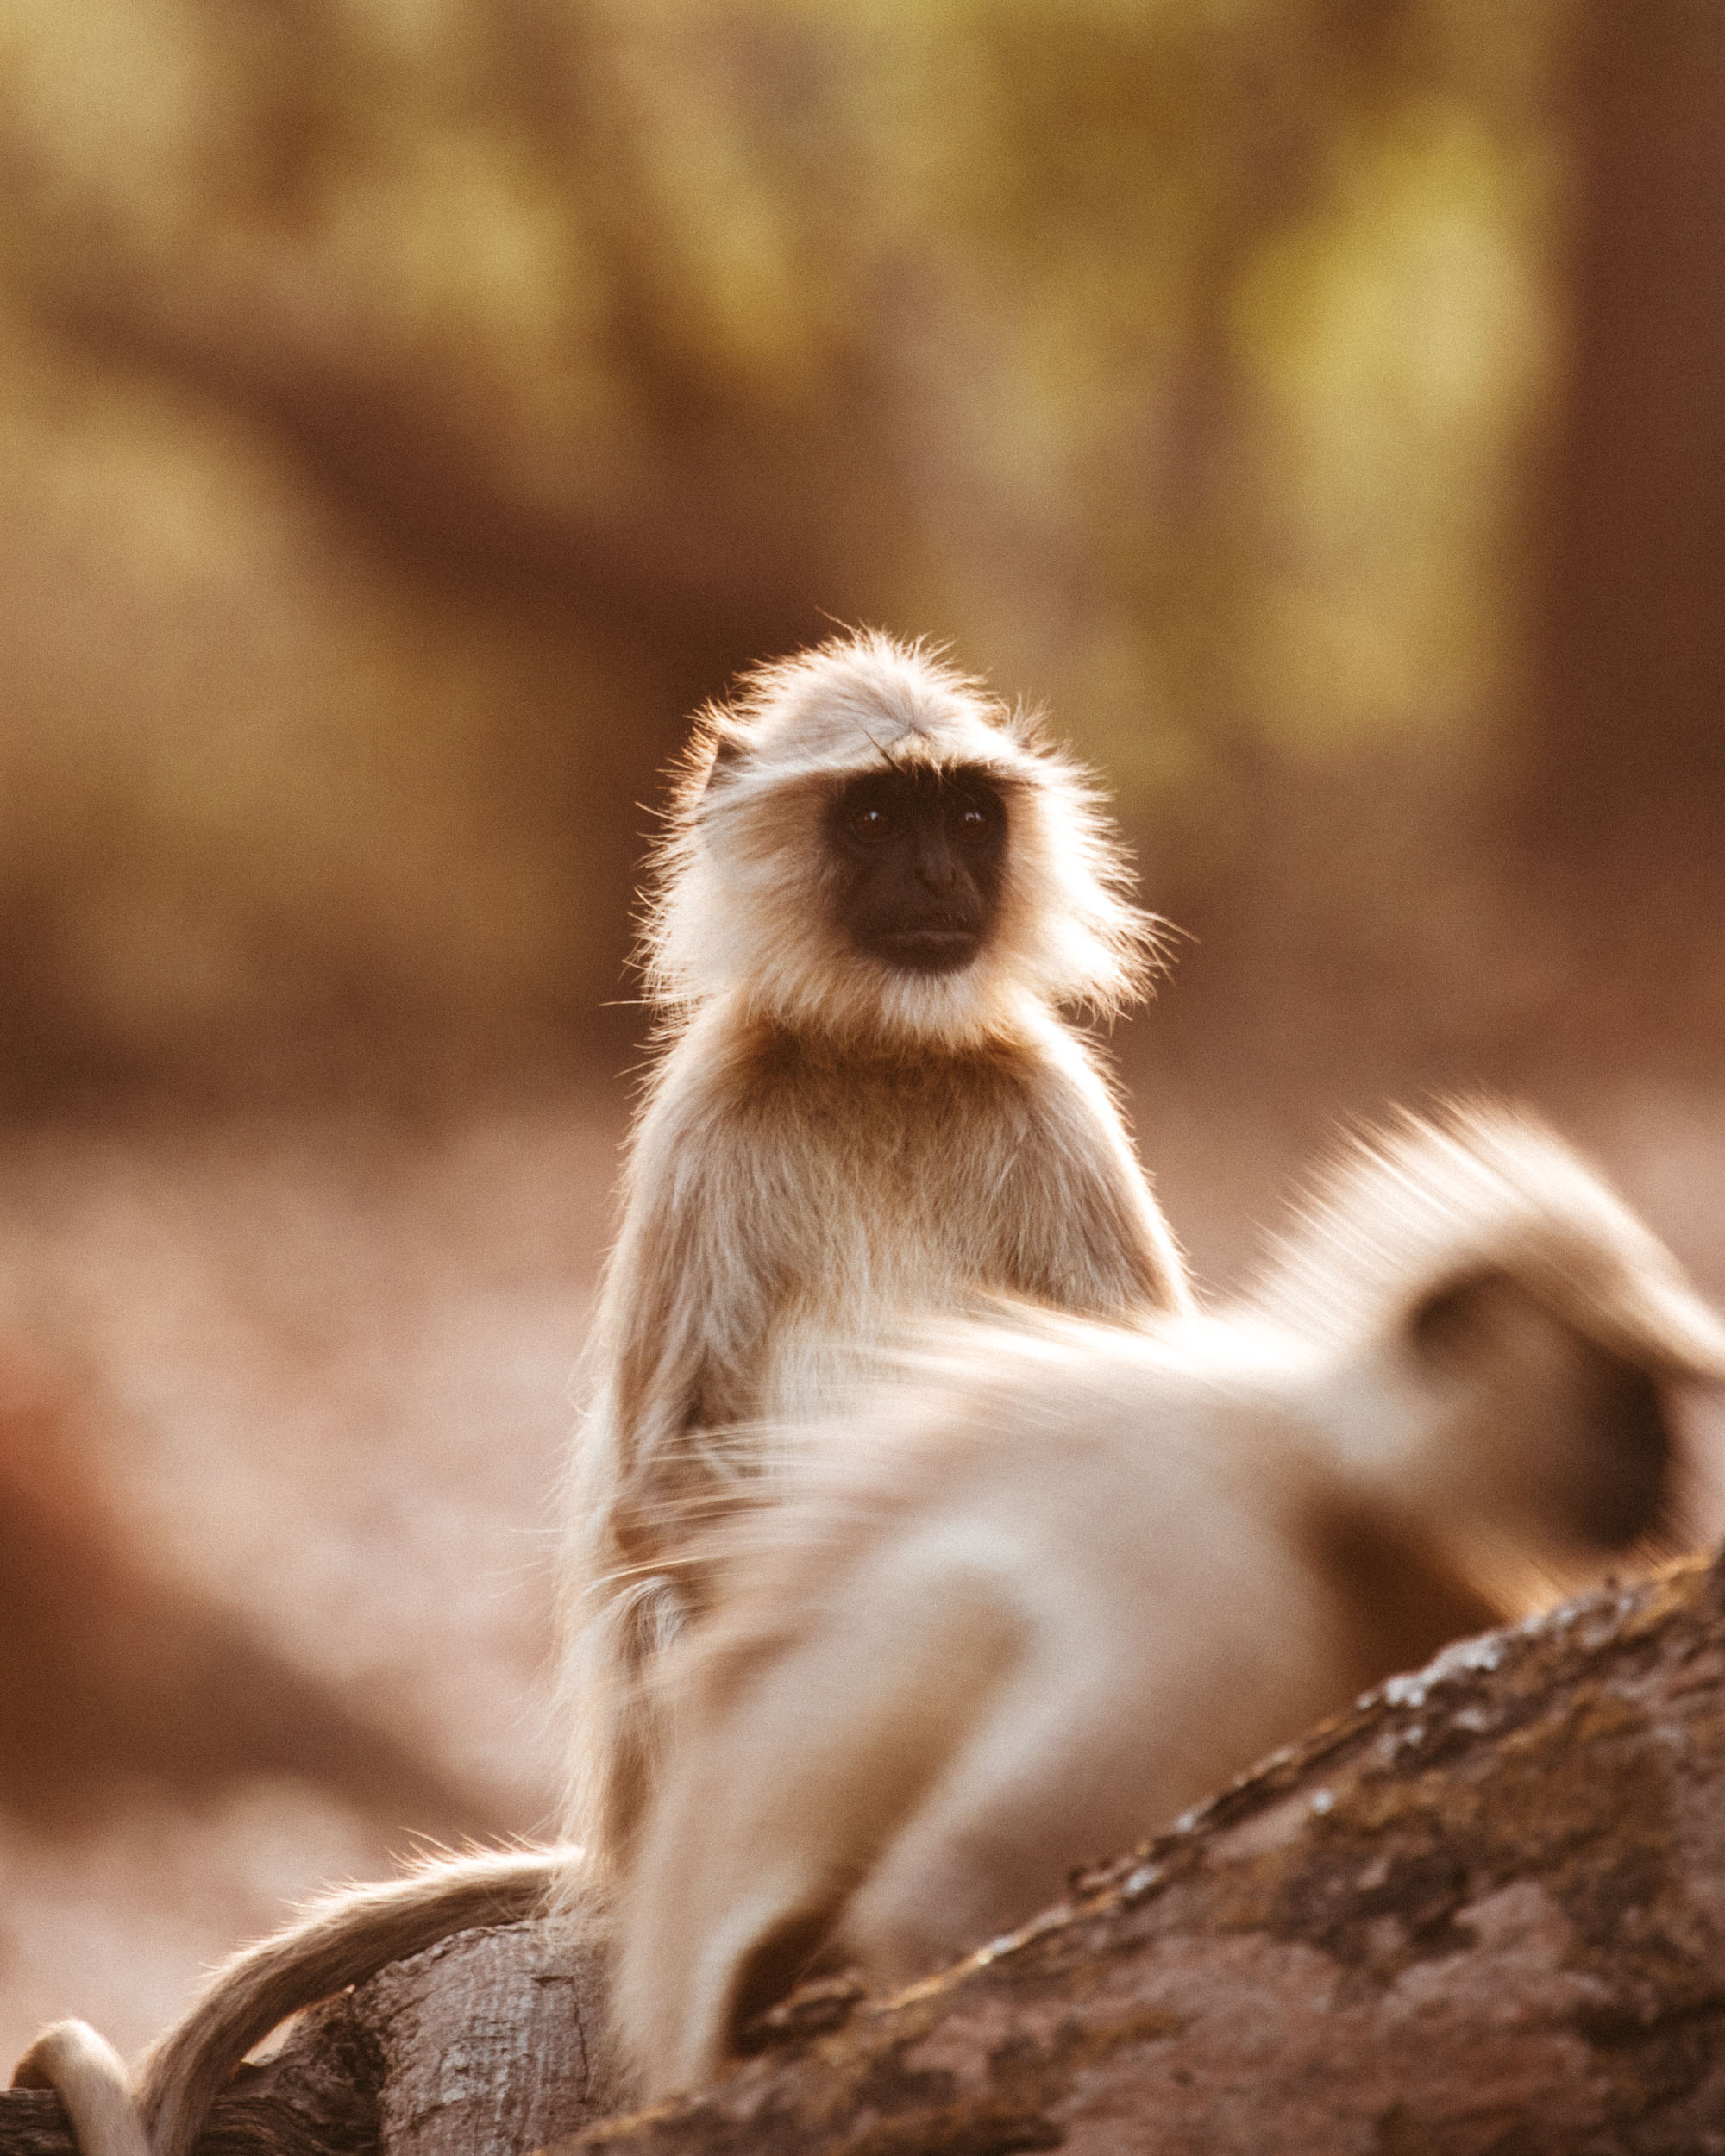 Monkeys on Safari in Ranthambore National Park, India via Find Us Lost